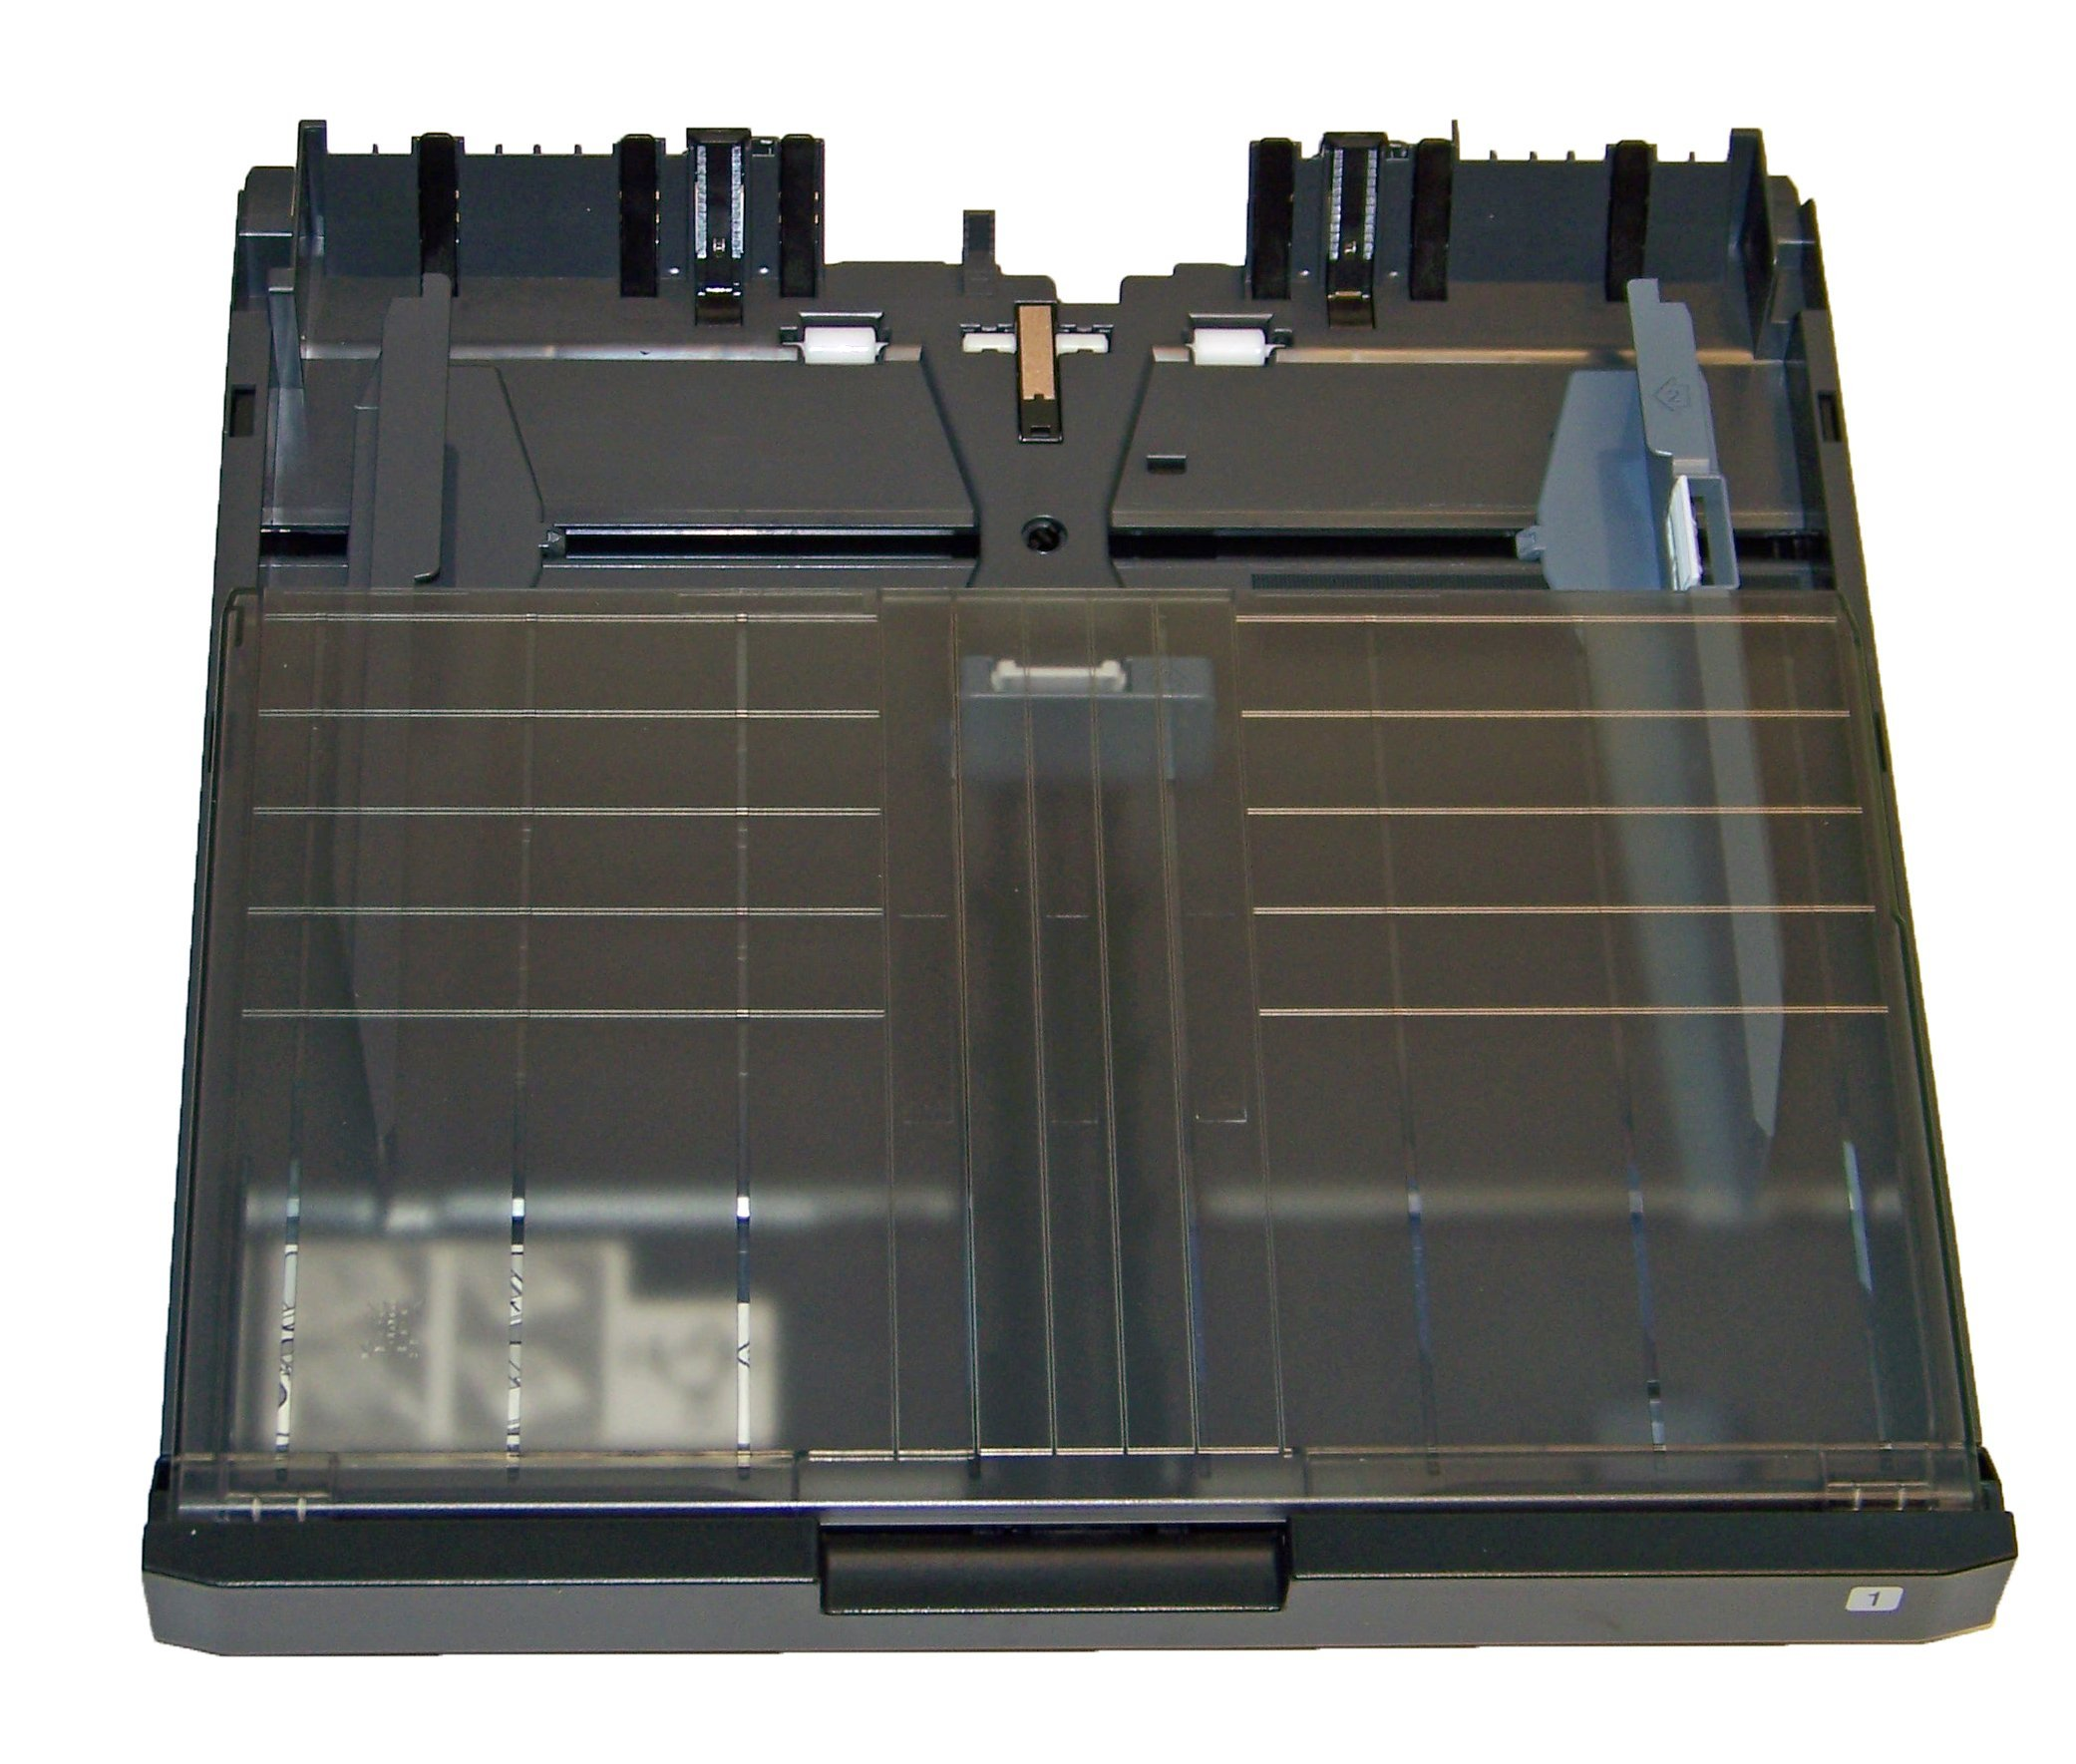 OEM Epson 1st Cassette Assembly / Paper Cassette Specifically For: WorkForce WF-7620, WorkForce WF-7621